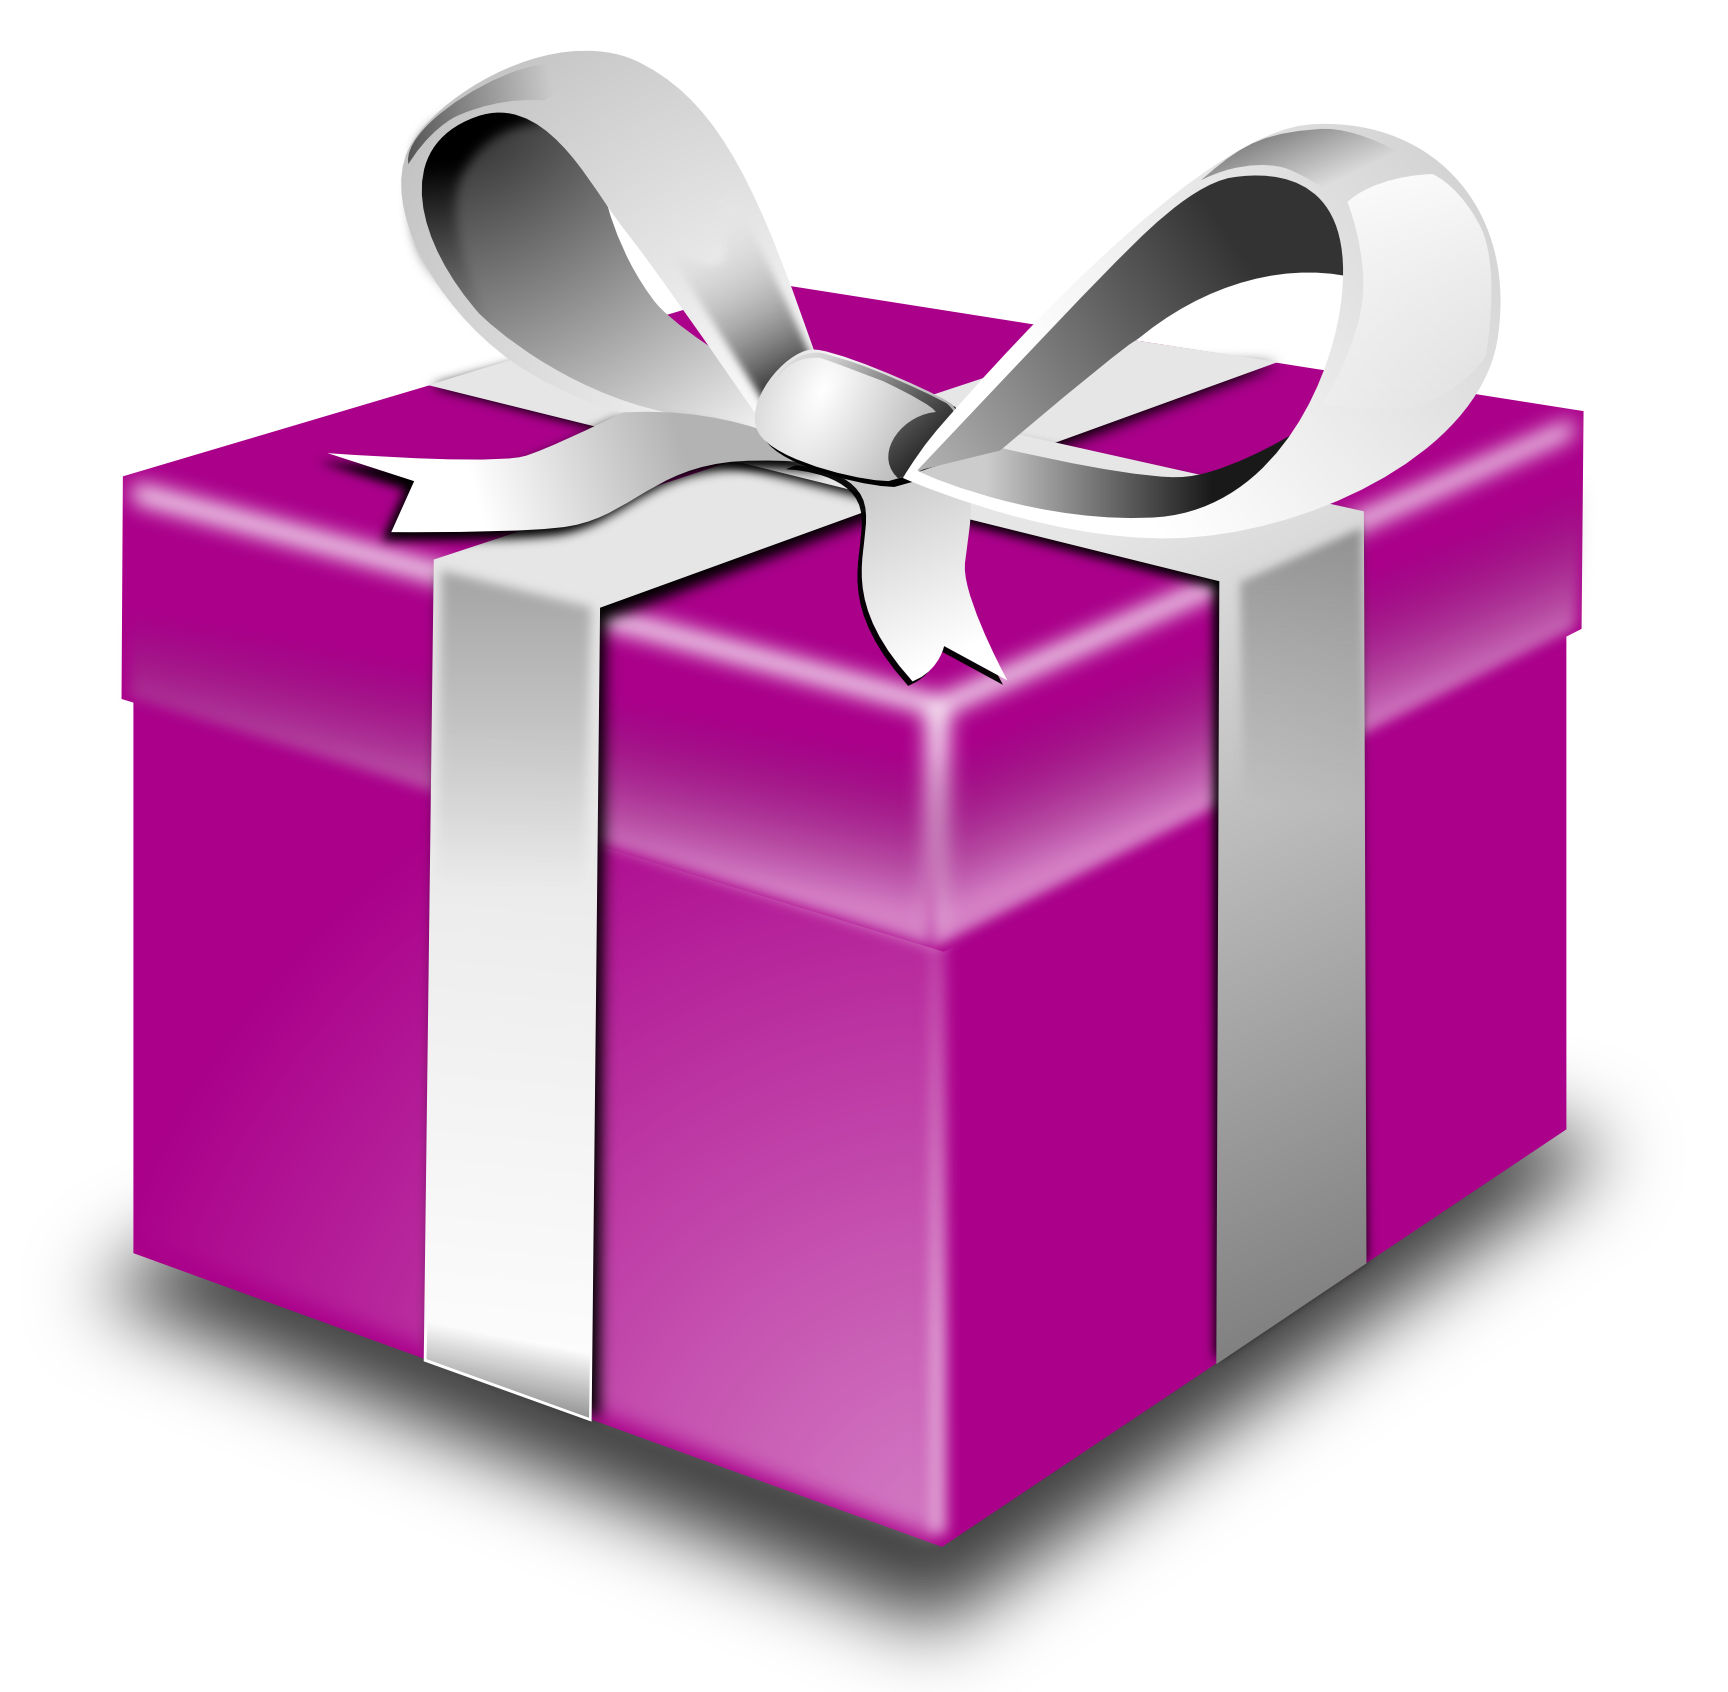 Mystery gift png. Present free download mart